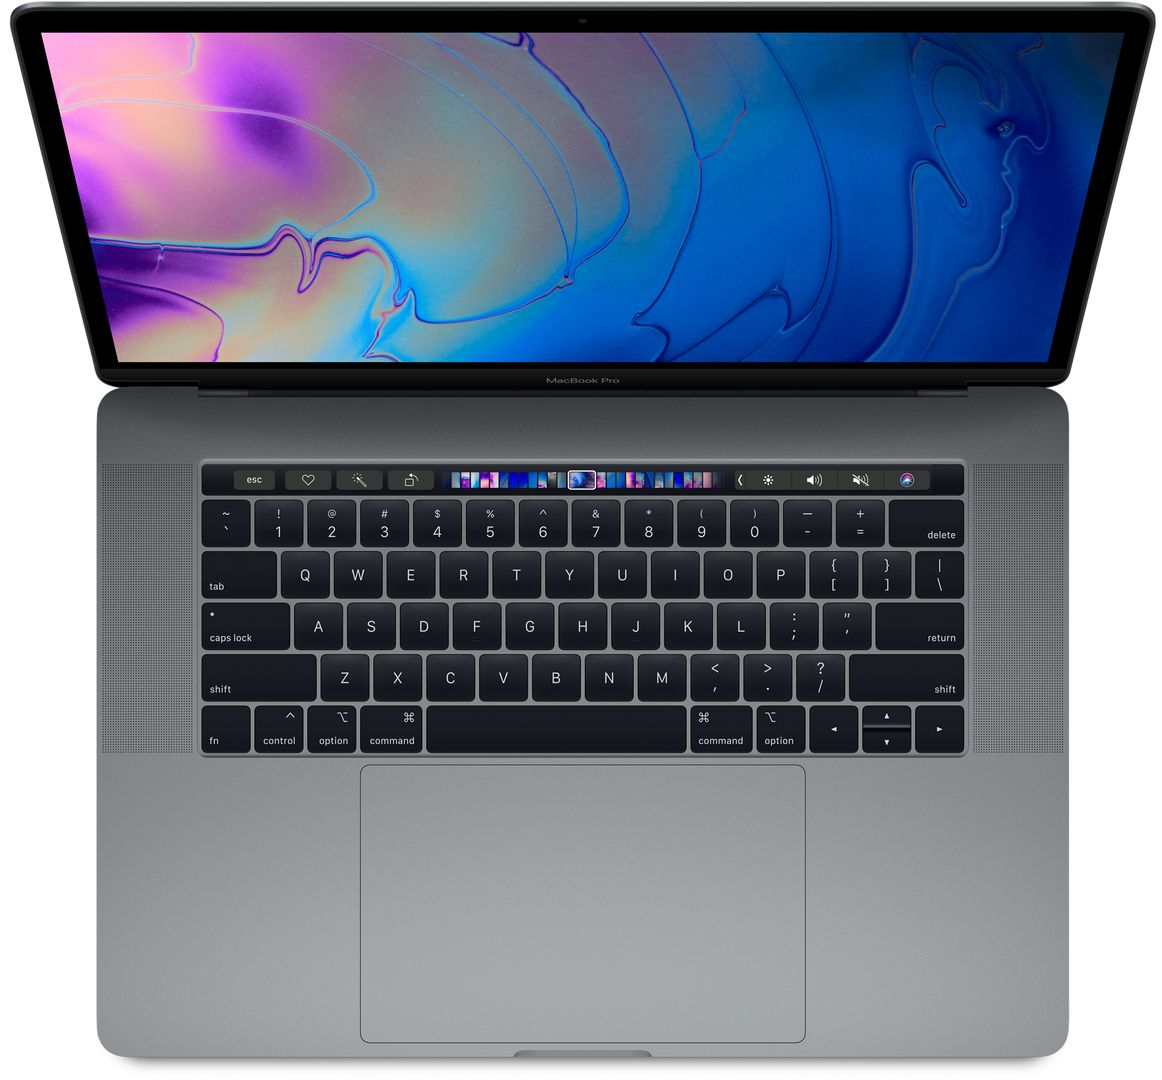 New MacBook Pro 13 with Scissor Switch Keyboard to Launch Soon